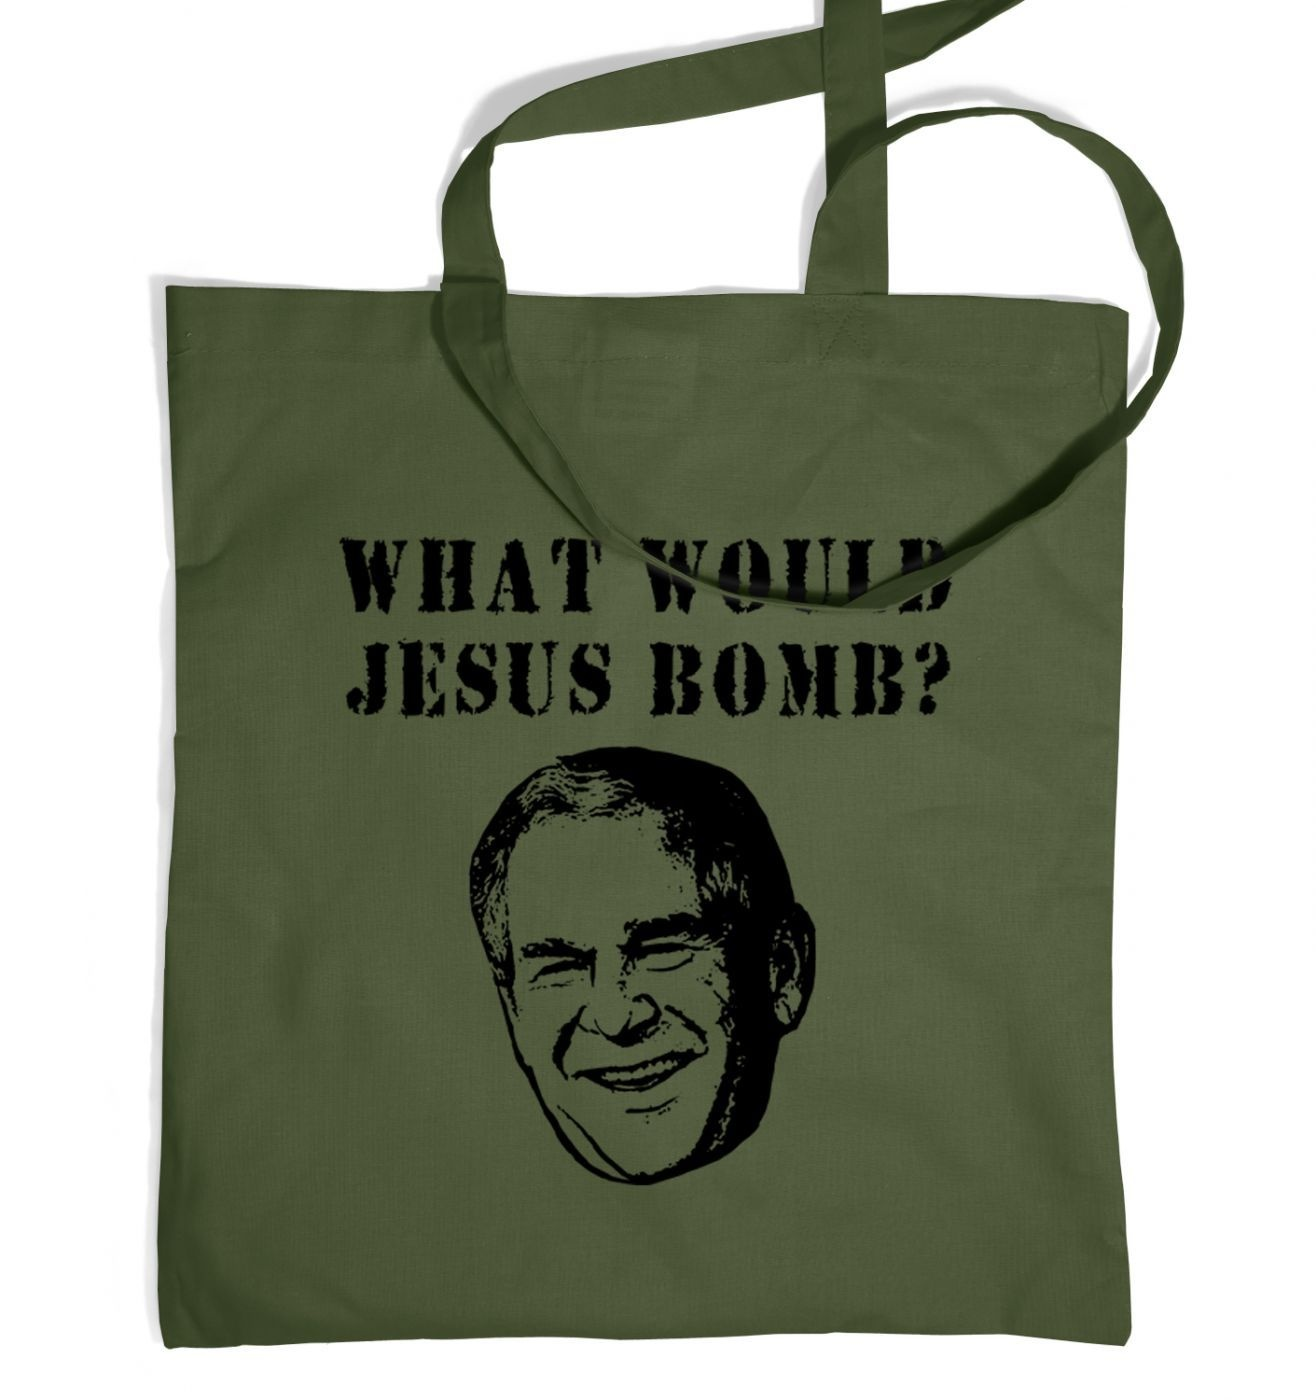 What Would Jesus Bomb? tote bag